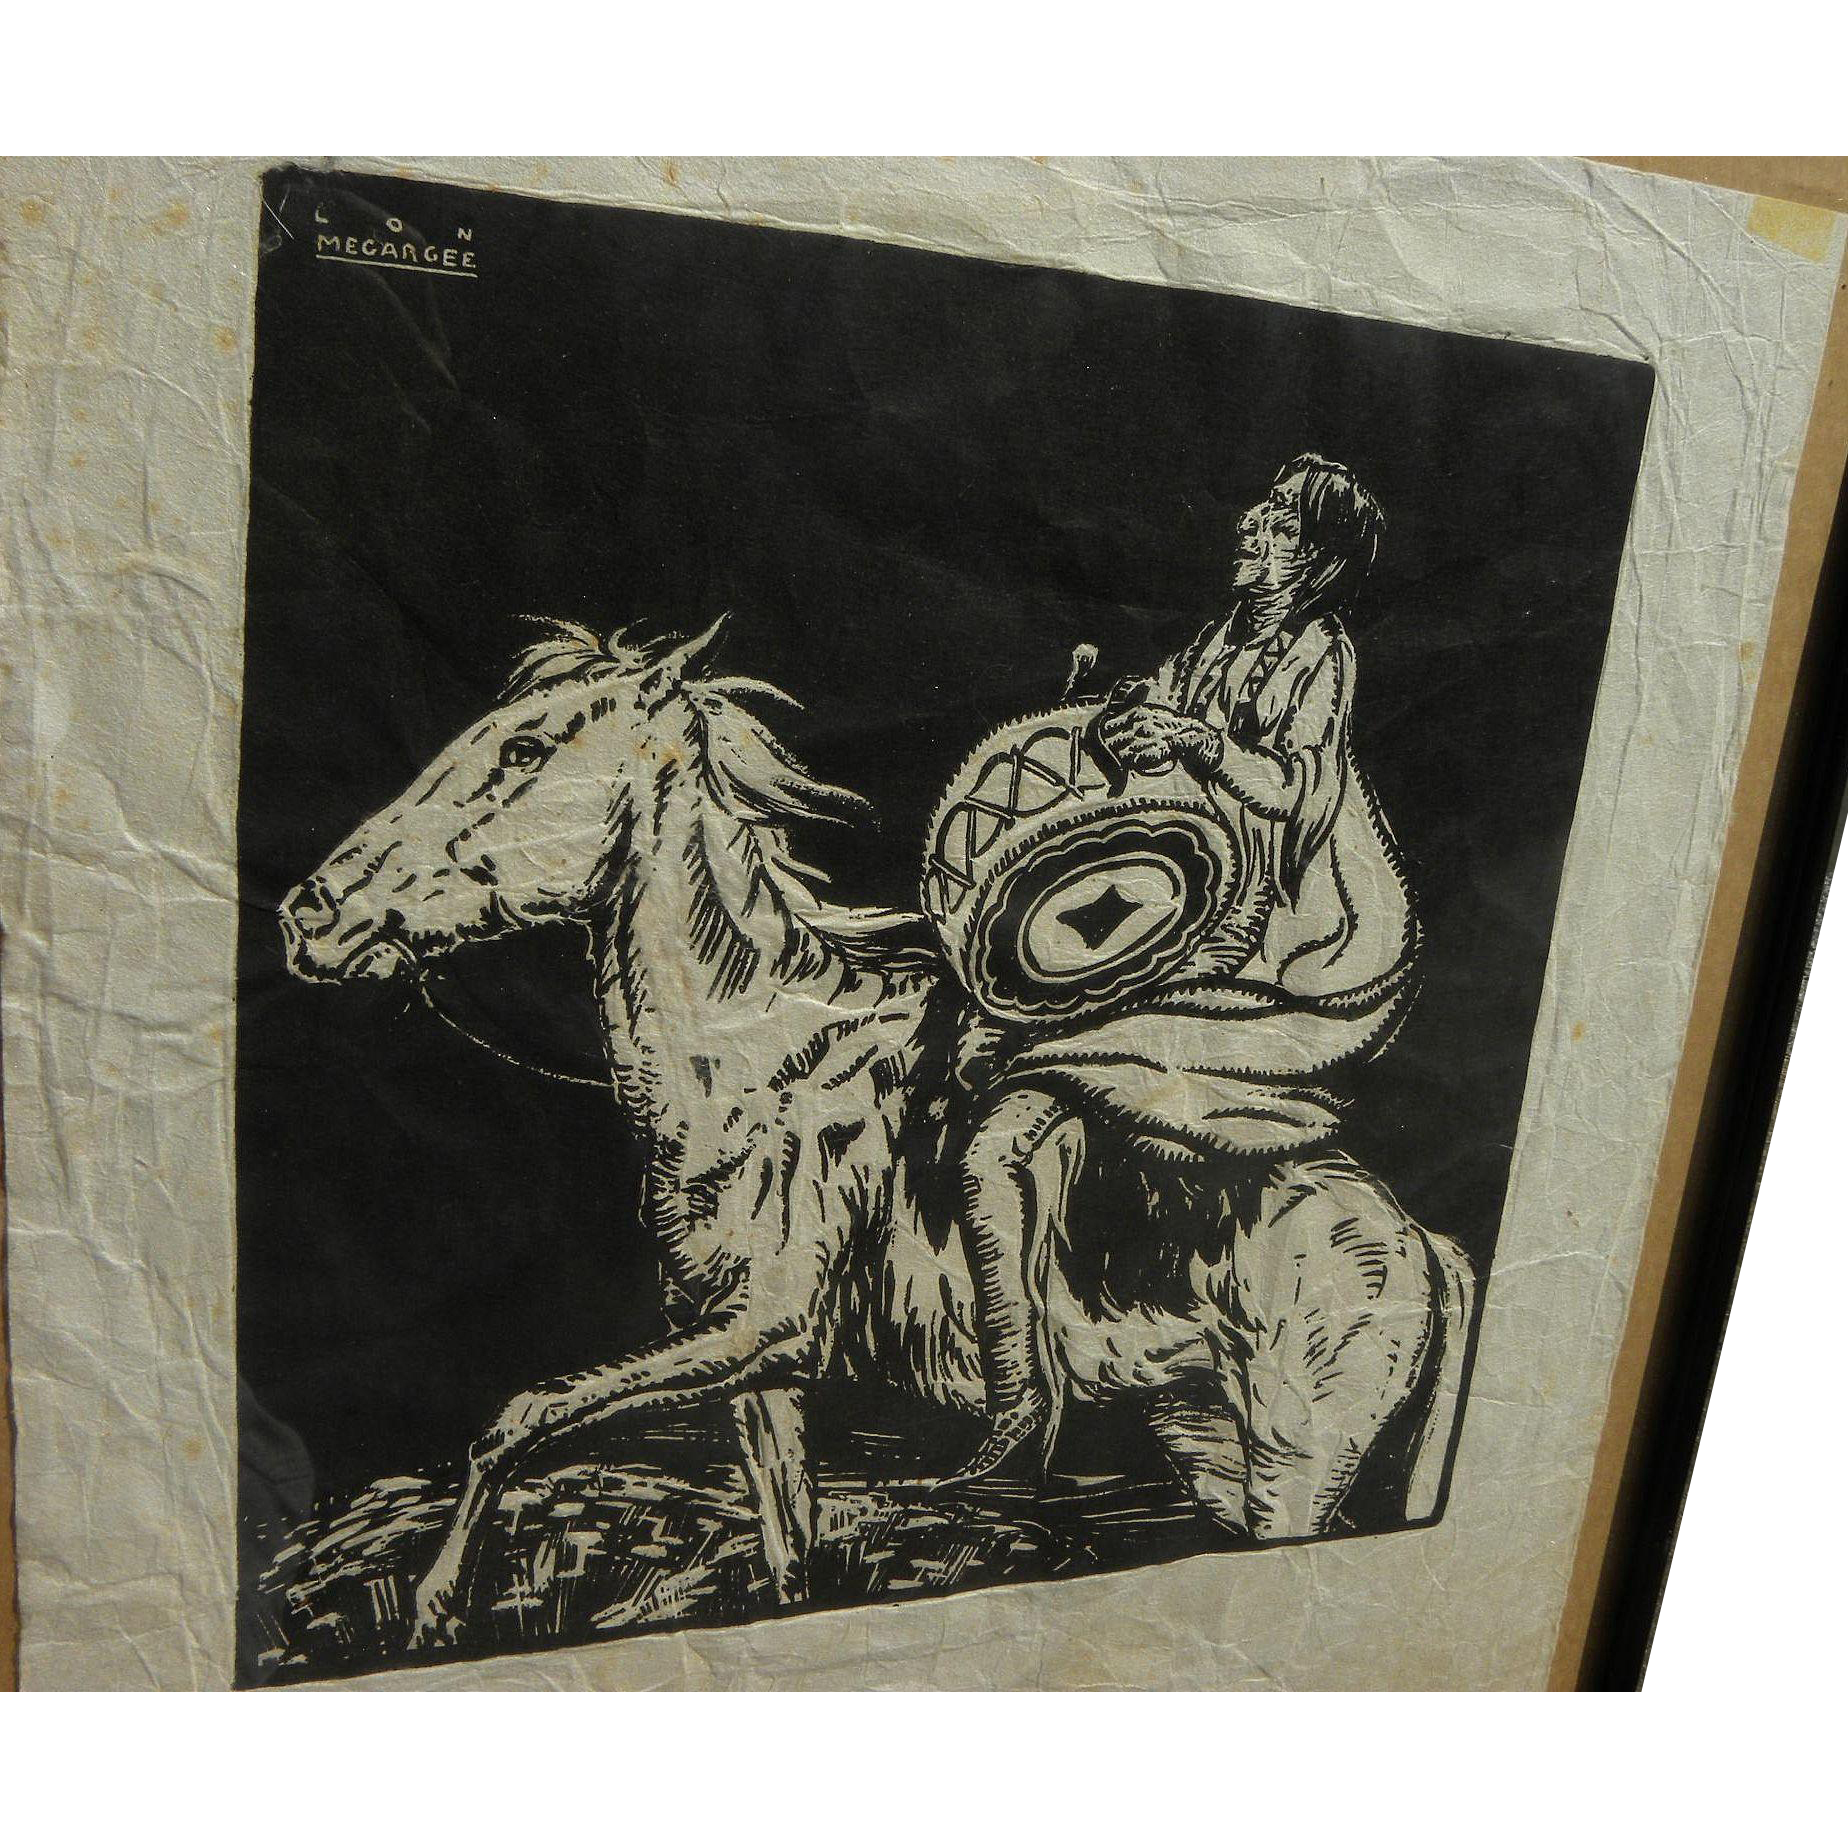 LON MEGARGEE (1883-1960) block print of Native American on horseback by major Arizona artist